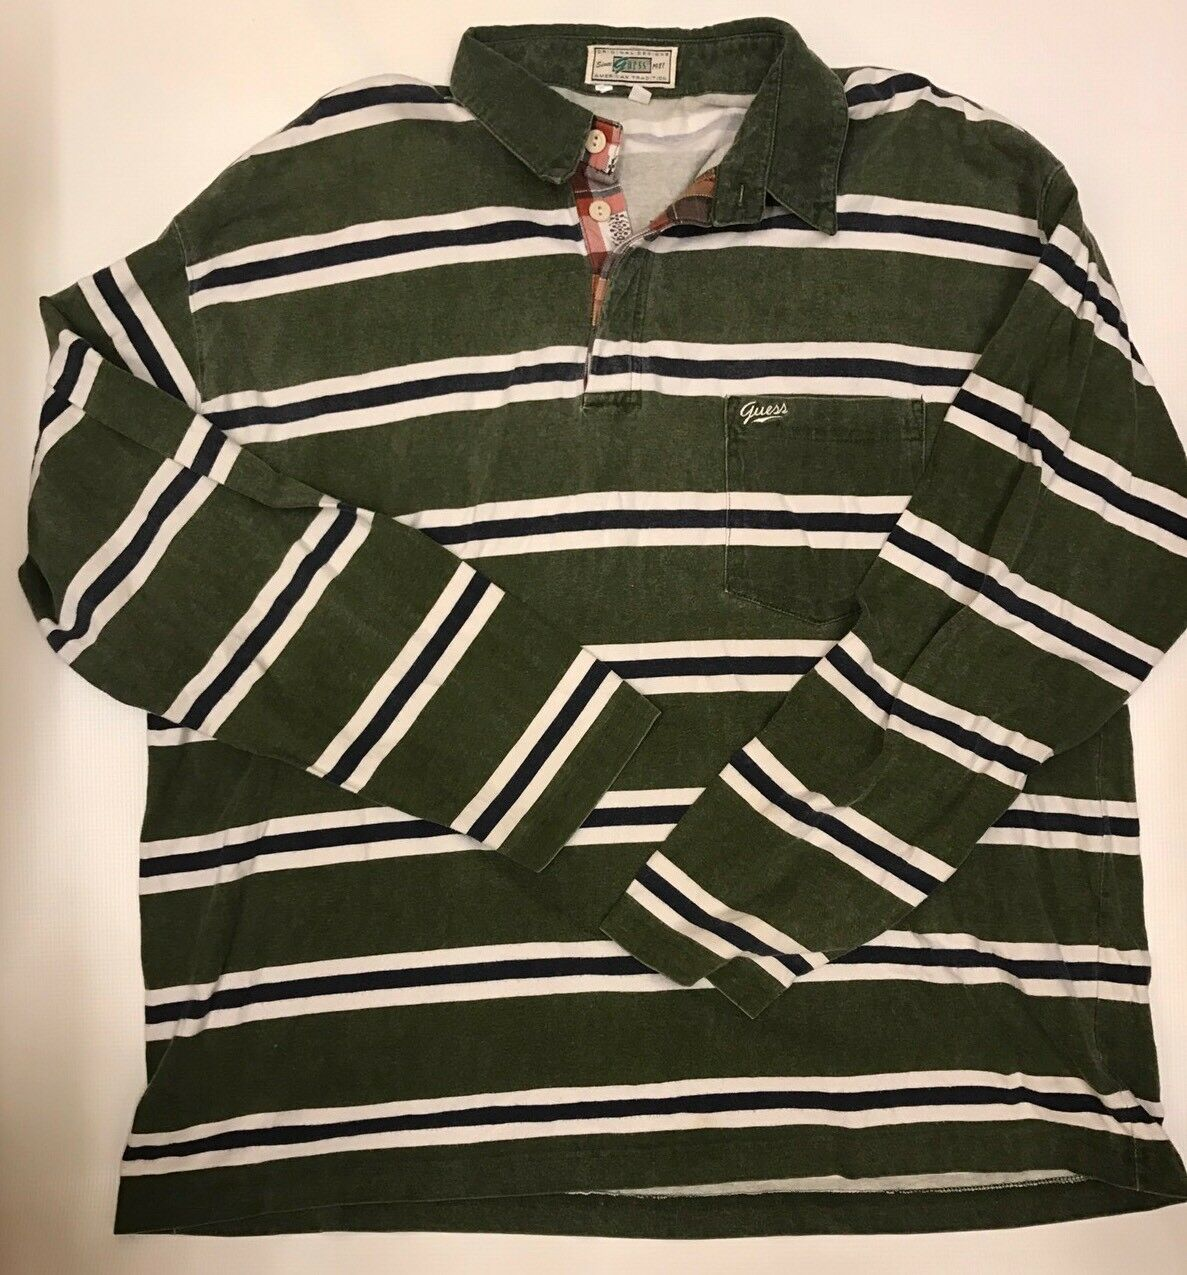 Guess Designs Polo Long Sleeve Shirt Men's Size XL Vintage Made in USA